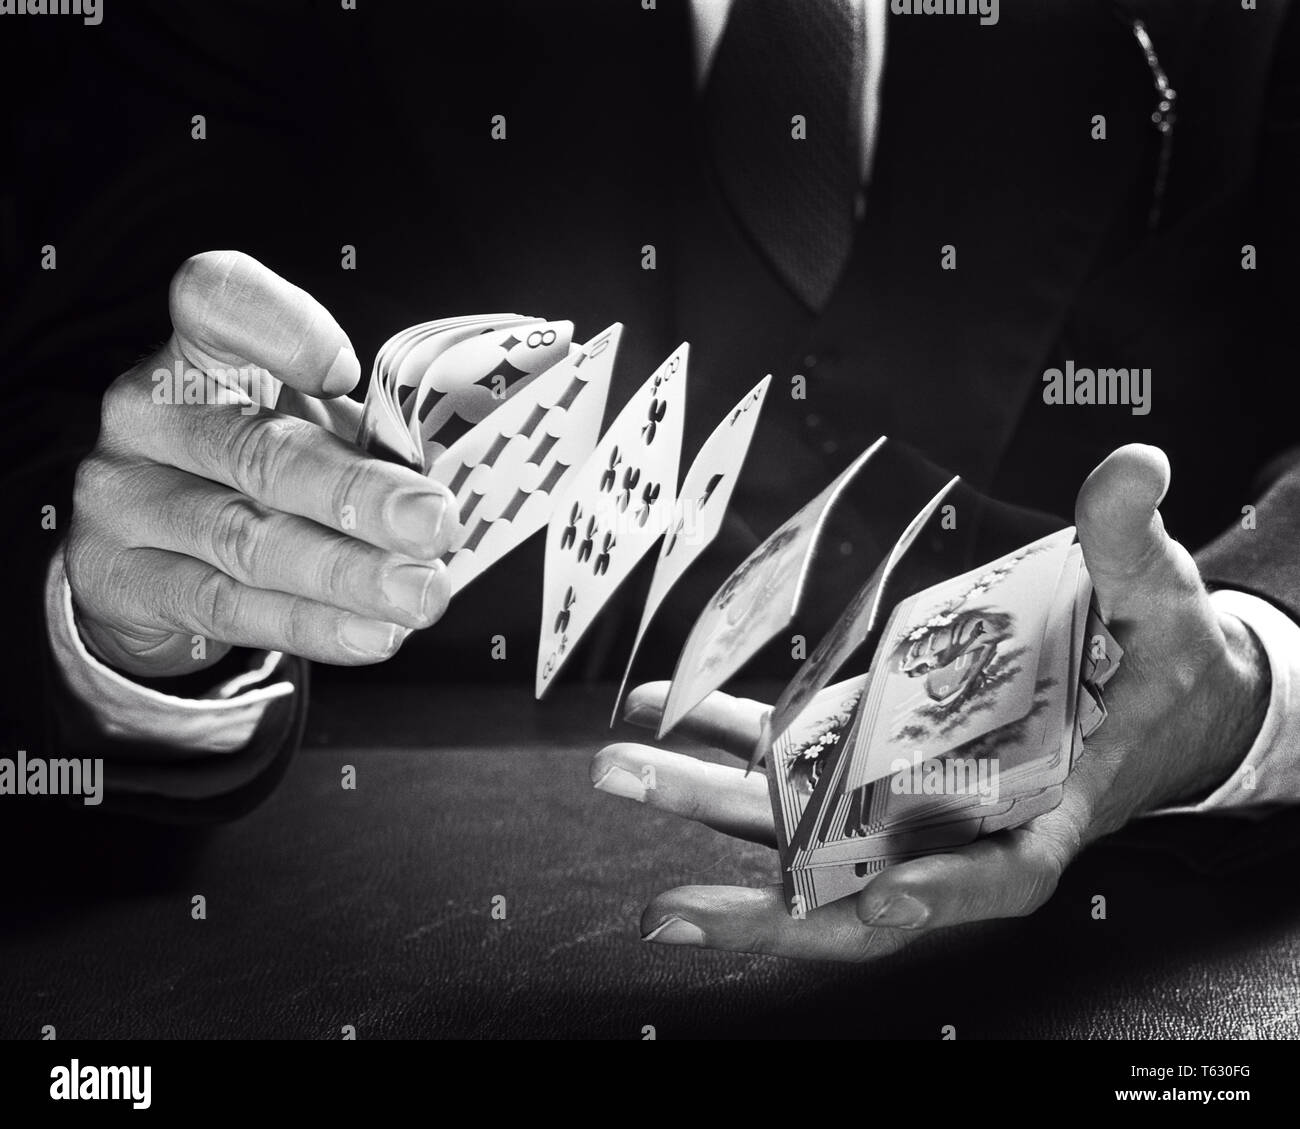 1960s HANDS OF MALE CARD FLOURISHING ARTIST SHOOTING DECK OF PLAYING CARDS FROM RIGHT TO LEFT HAND A PERFORMANCE OF CARDISTRY - s14574 HAR001 HARS OCCUPATIONS CONCEPT MOTION BLUR CONCEPTUAL CARD GAME SHUFFLING ARTISTRY SHUFFLE SYMBOLIC CONCEPTS PERFORMERS PLAYING CARDS BLACK AND WHITE CAUCASIAN ETHNICITY HANDS ONLY HAR001 OLD FASHIONED REPRESENTATION - Stock Image